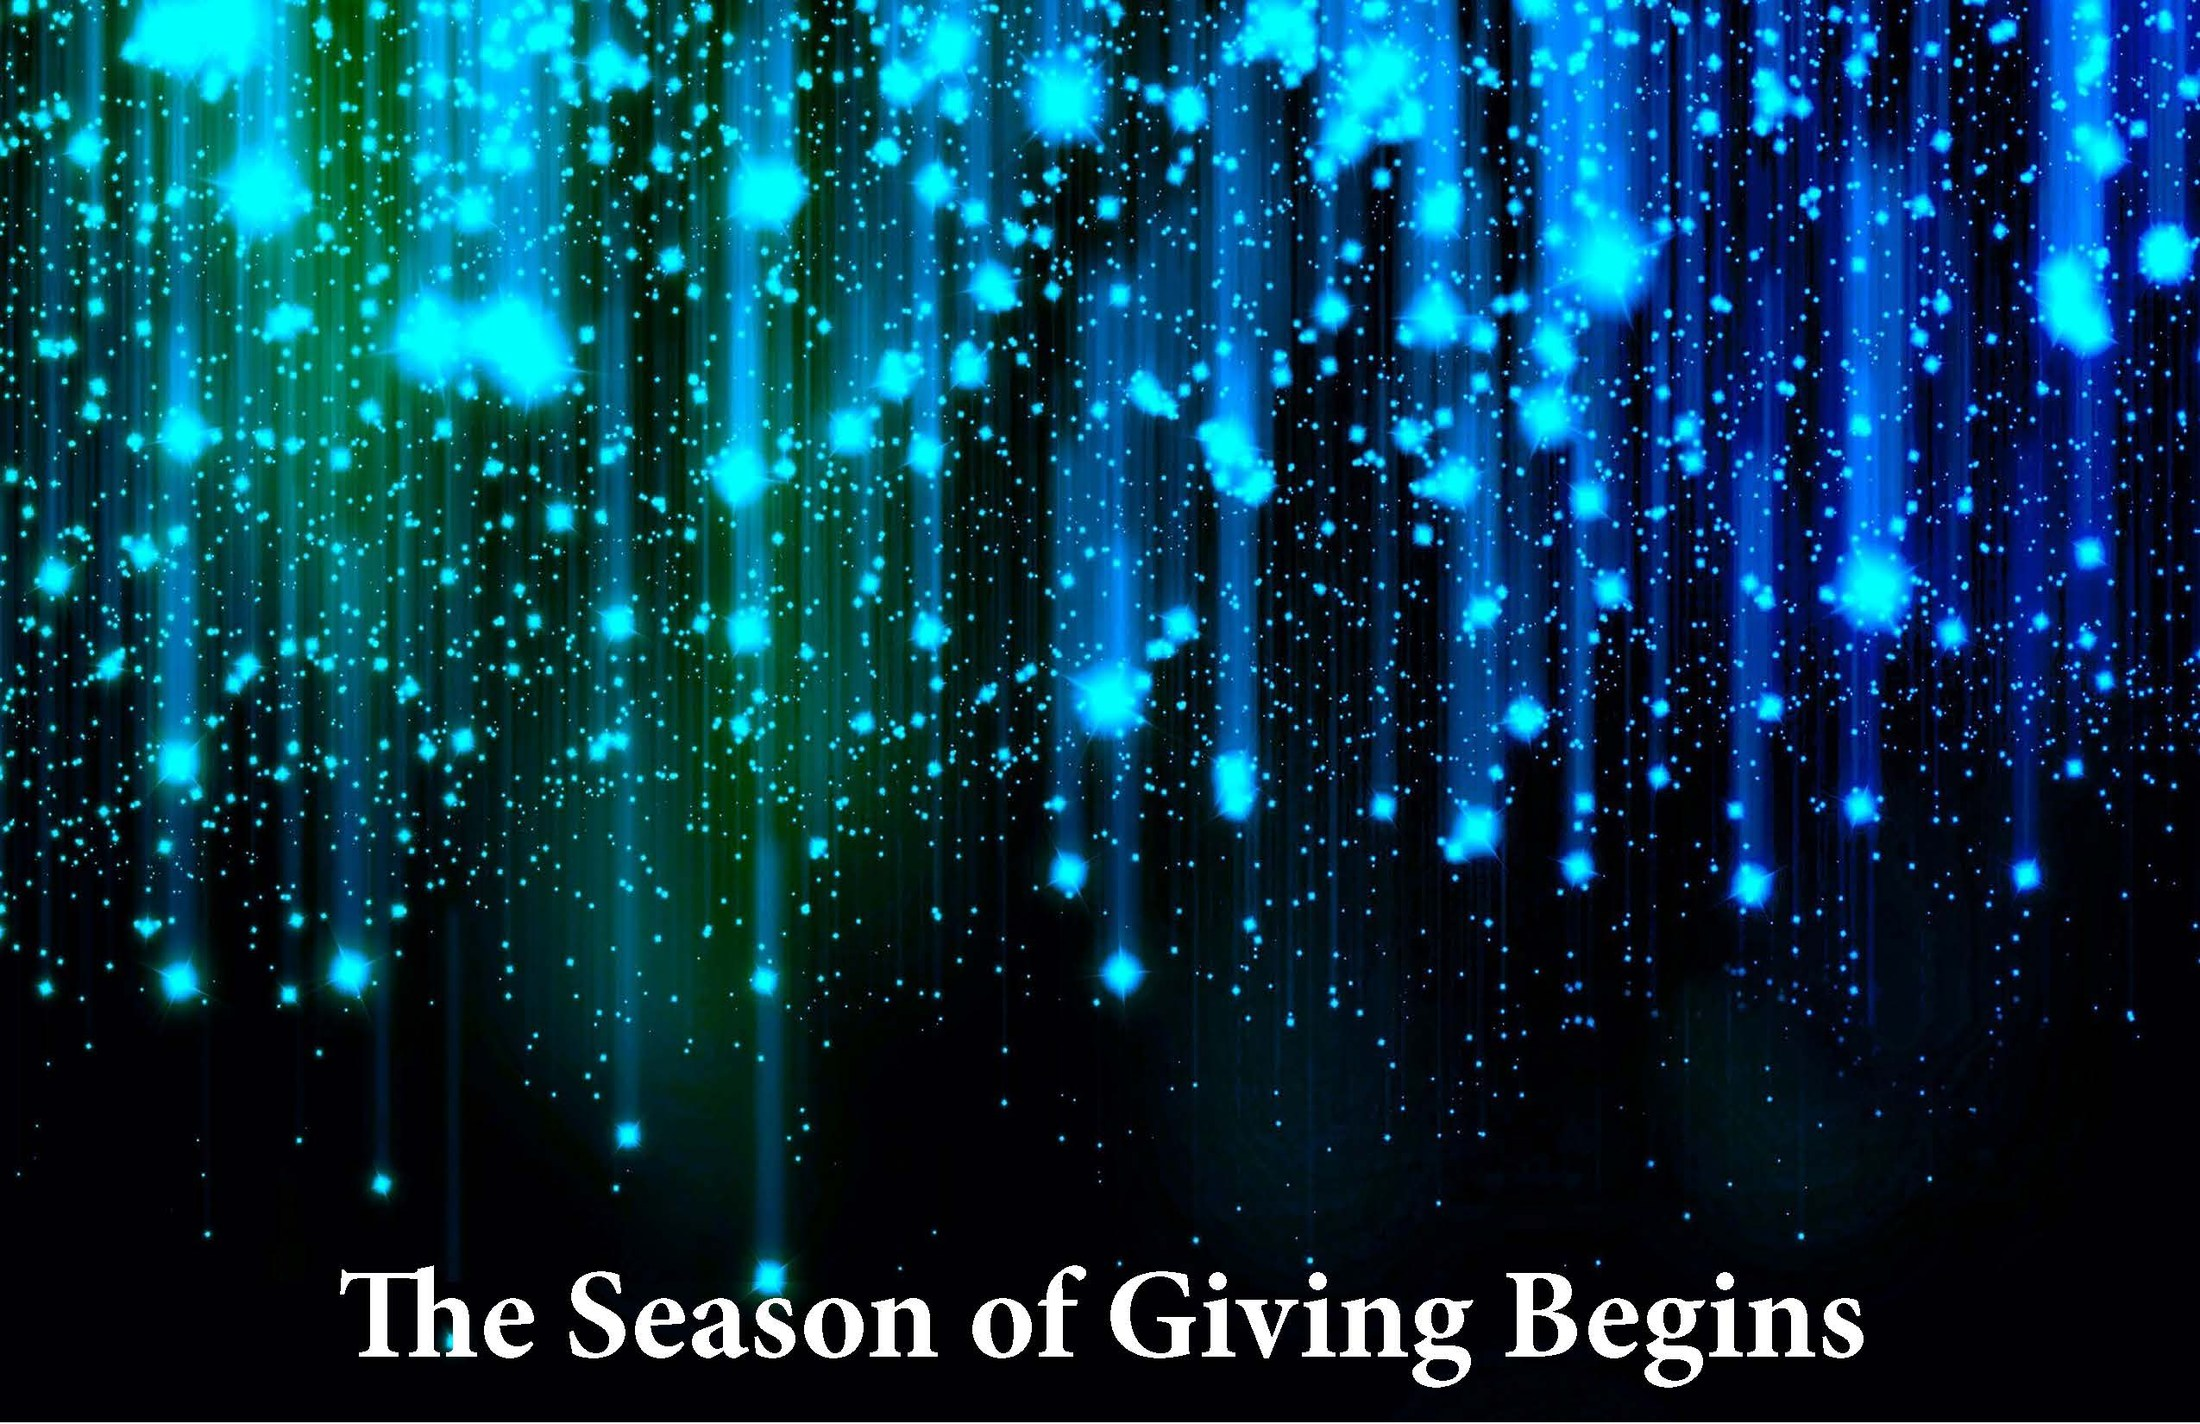 CUHSD's Season of Giving begins